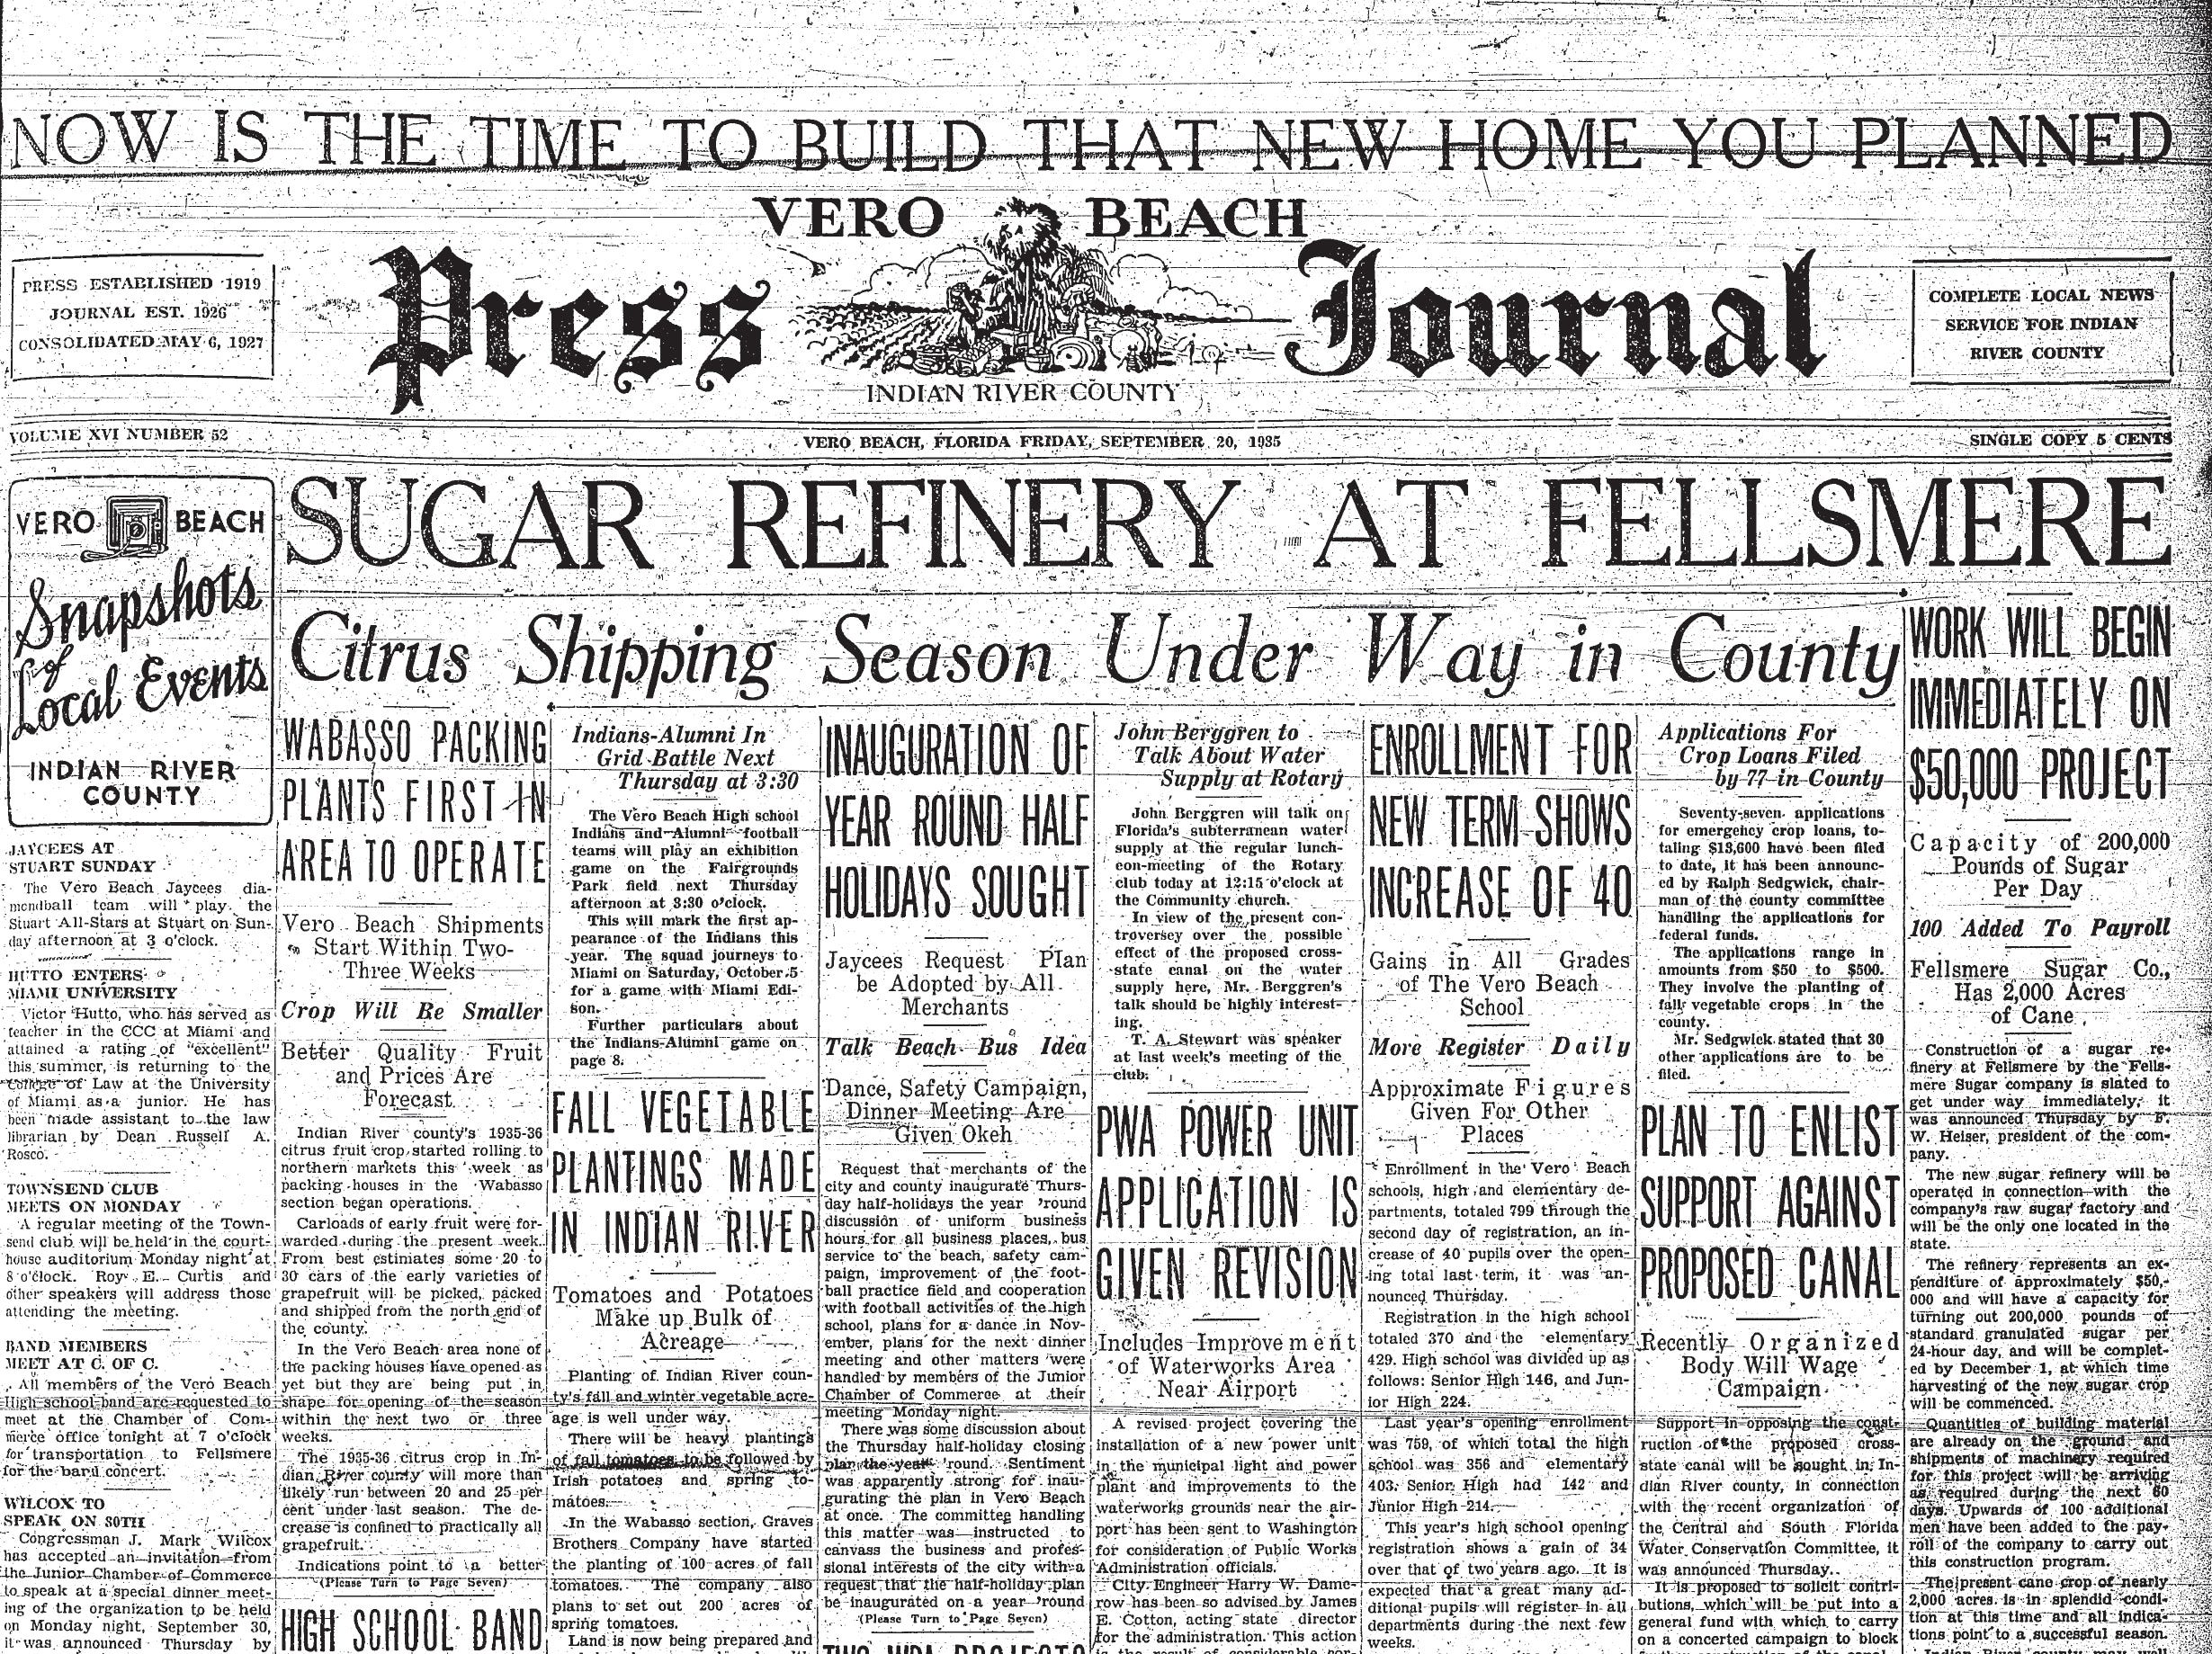 September 20, 1935, Sugar Refinery At Fellsmere